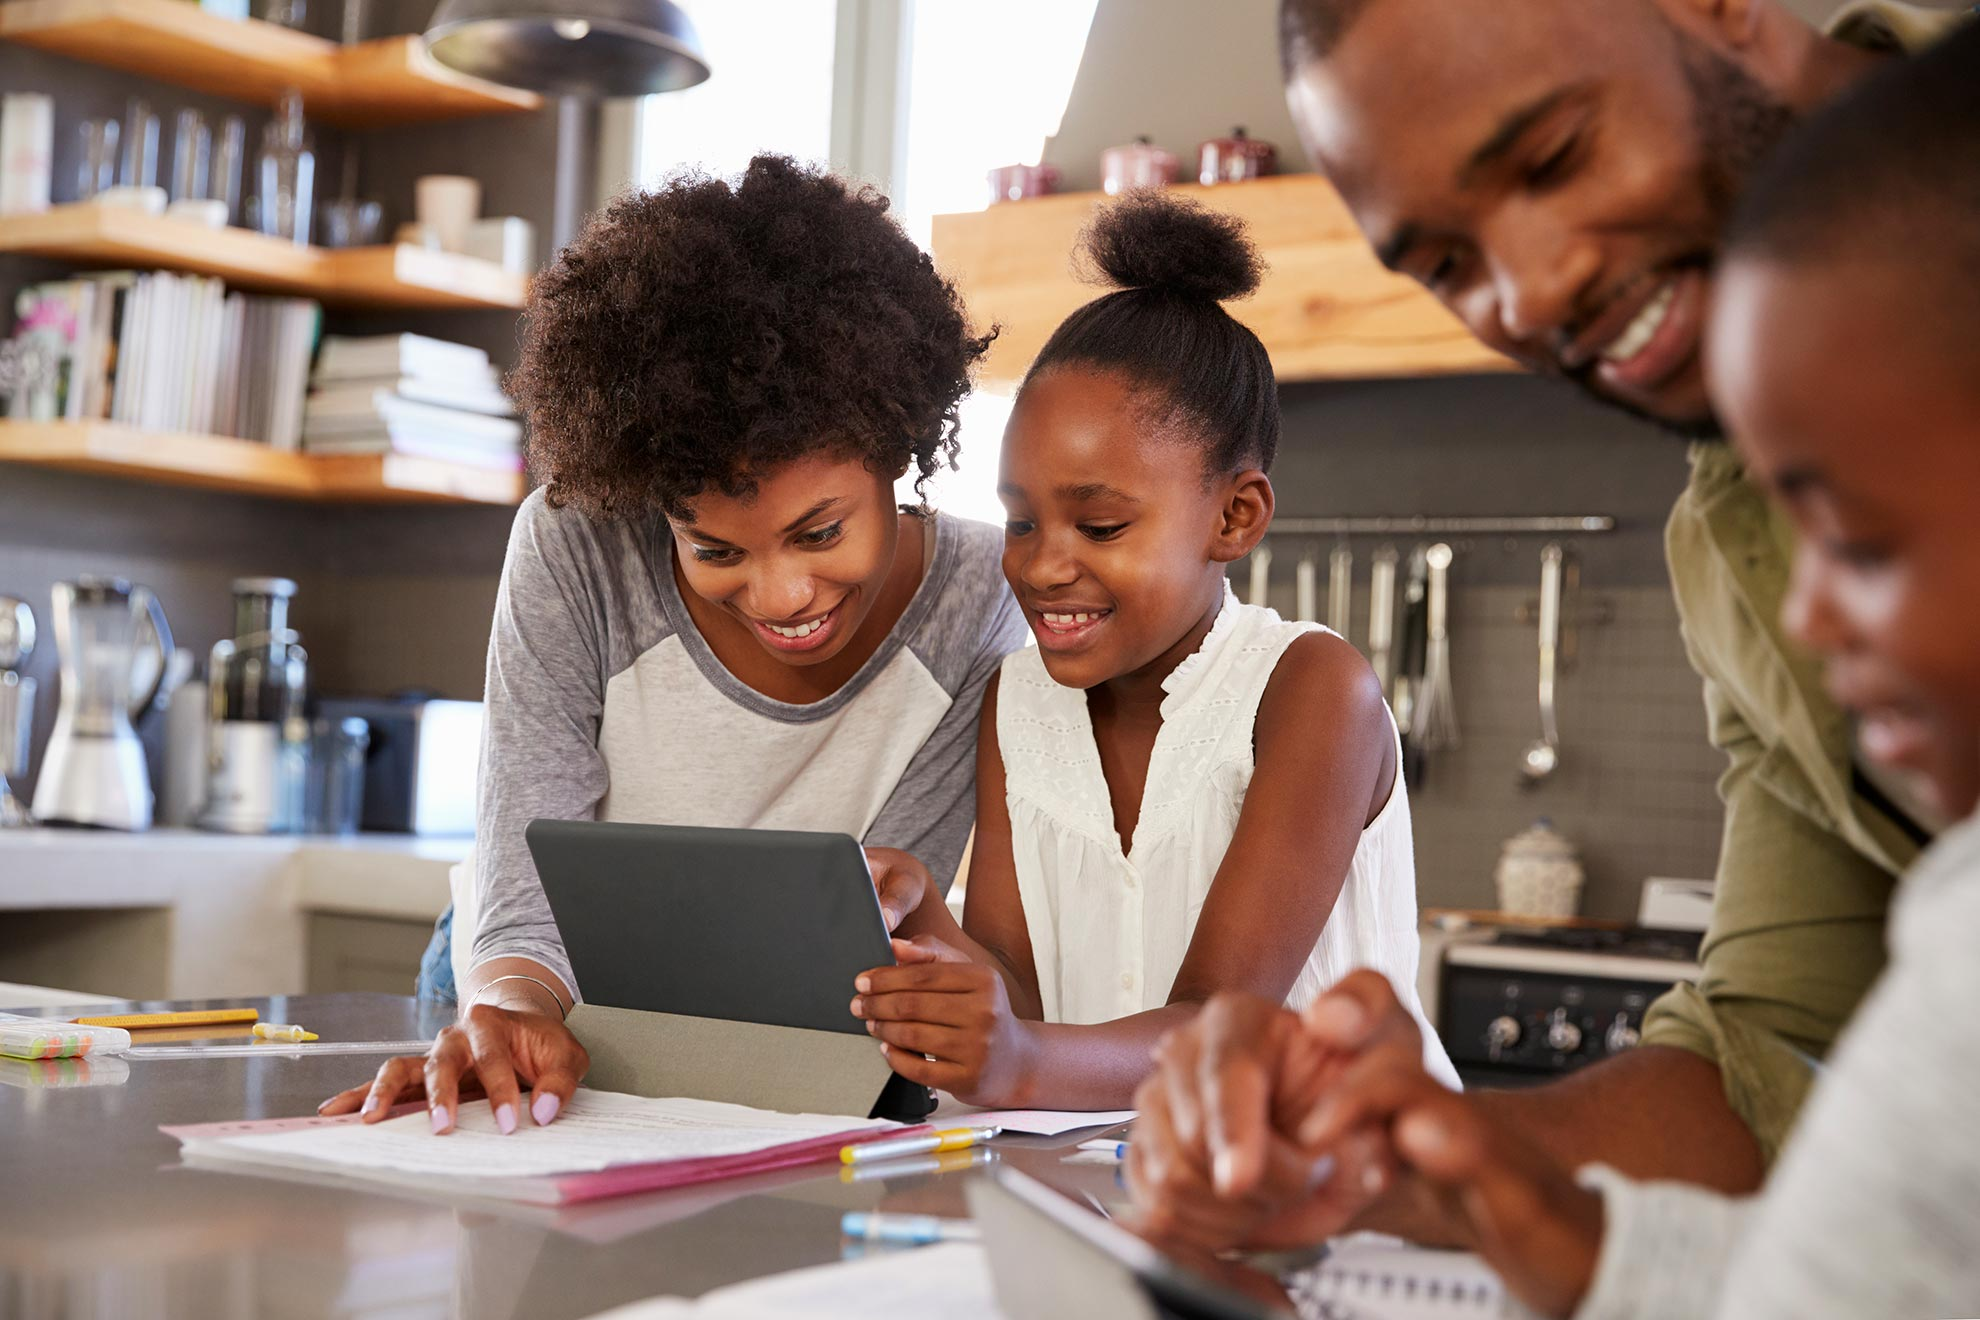 A family completes classwork together at home